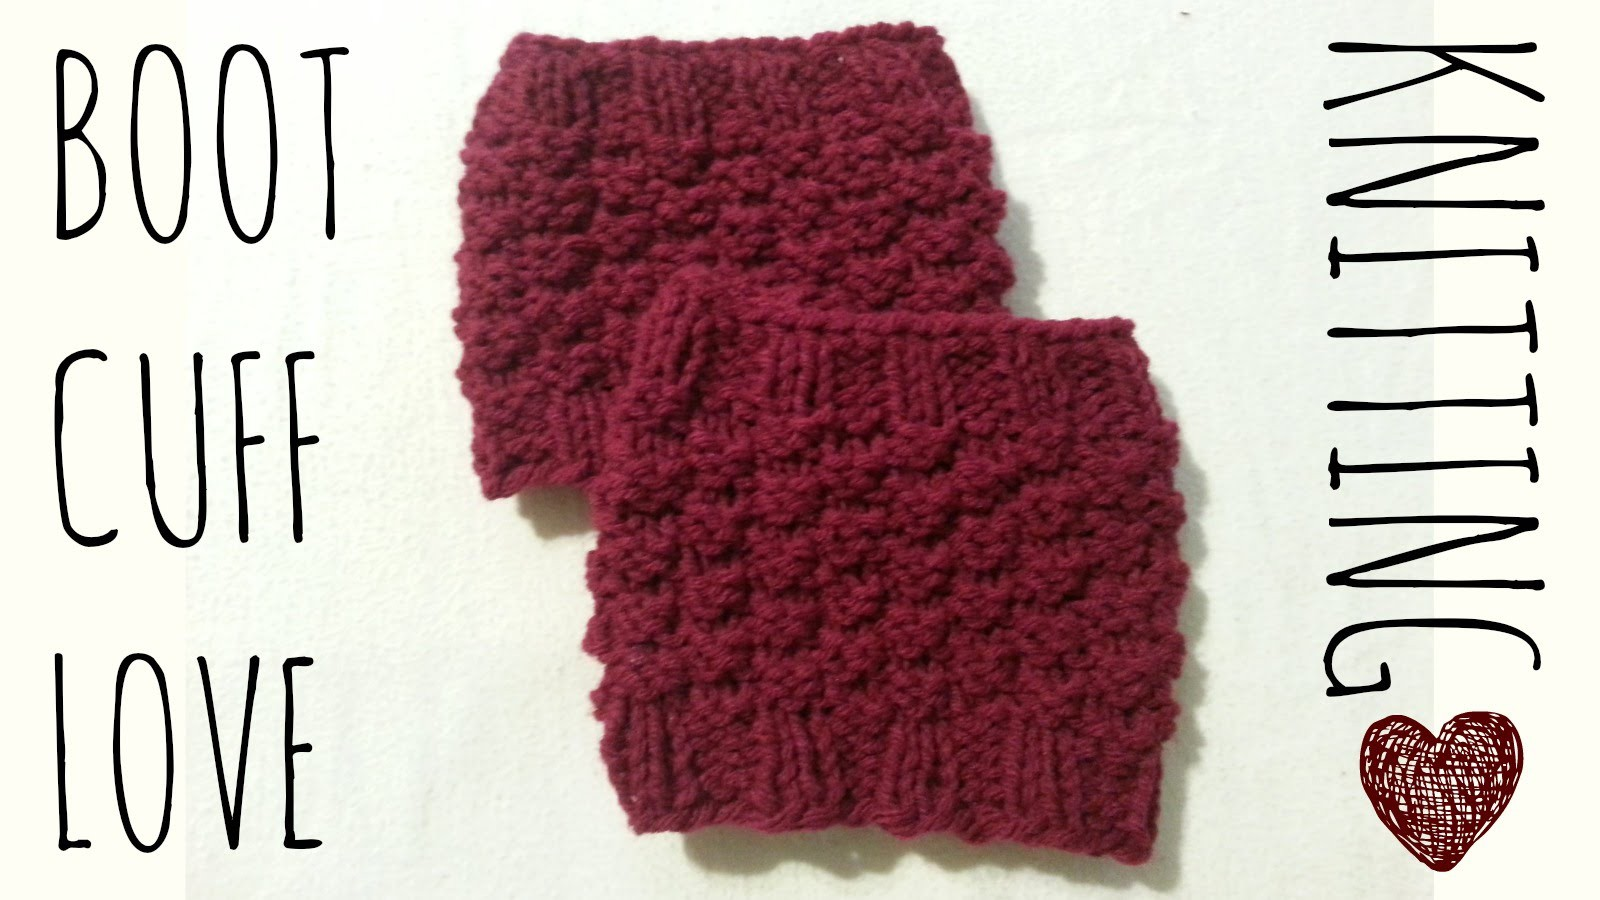 Boot Cuff 'Love' | Easy Knit Pattern | Knitting Accessories Tutorial